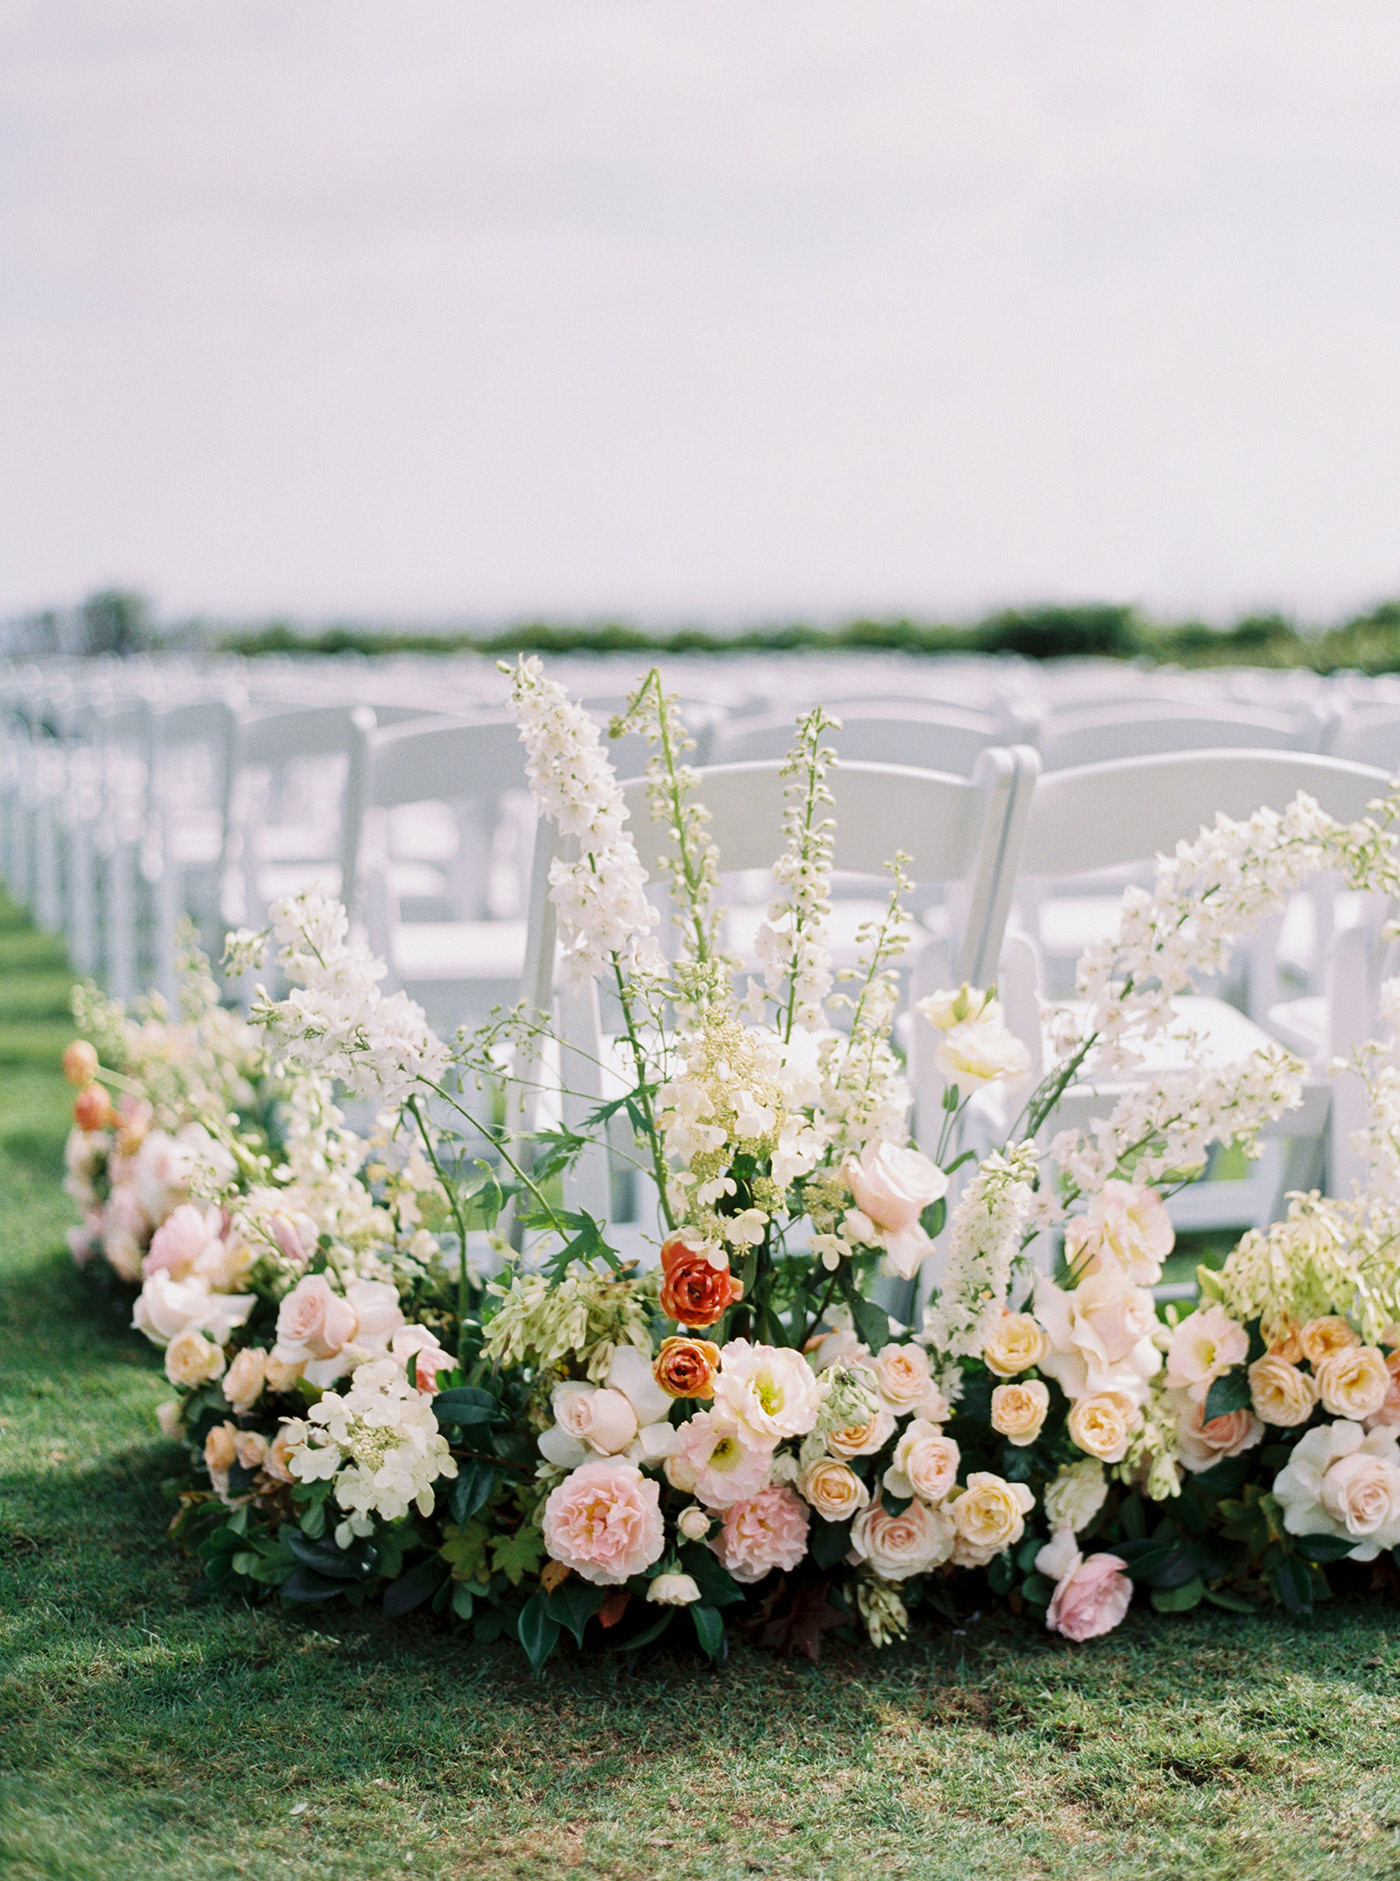 mykaela and brendon wedding ceremony chairs decorated with roses and greenery